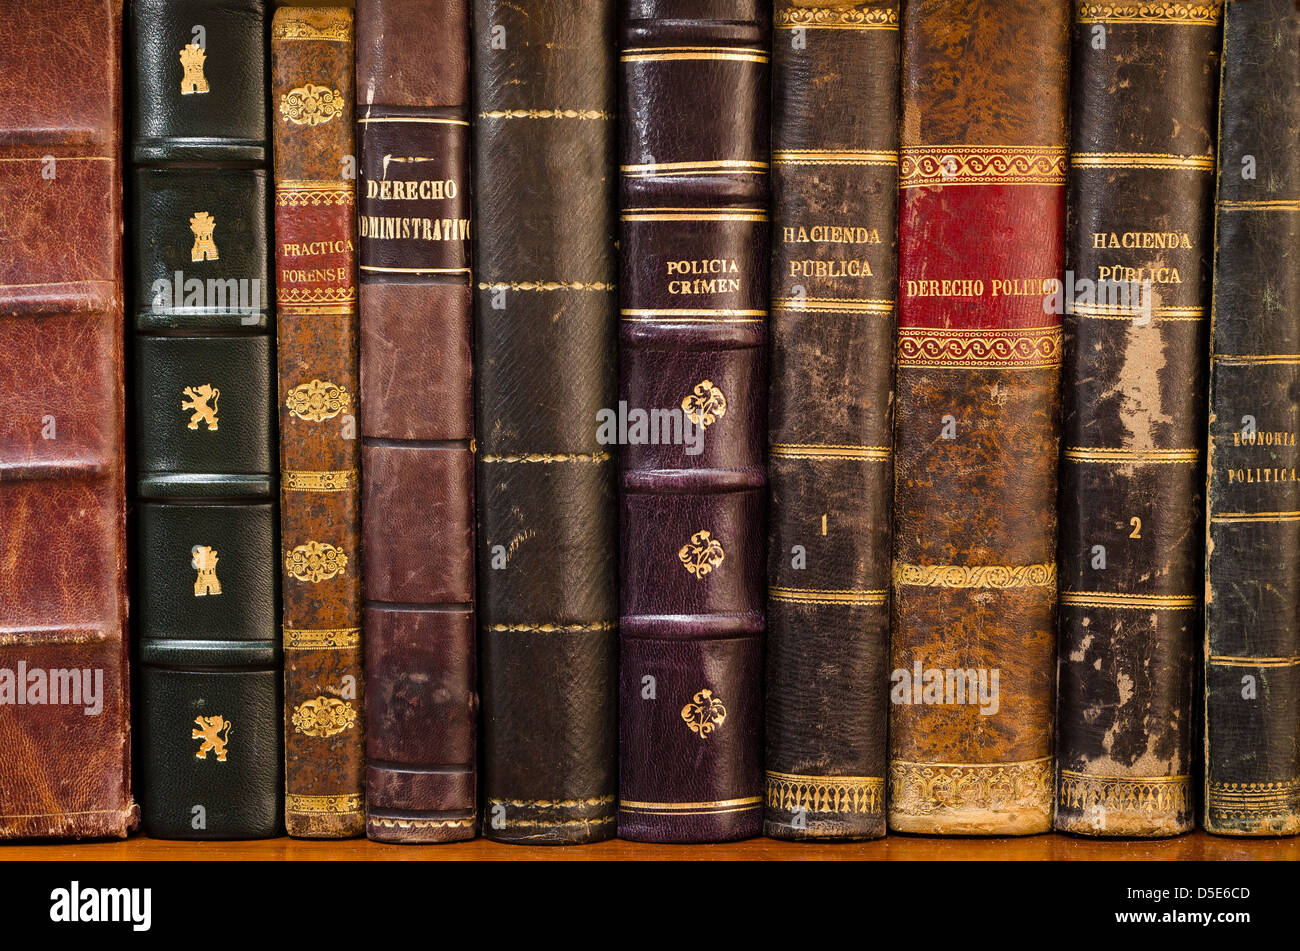 Bookshelf With Old Books In Spanish Legal And Economic Issues